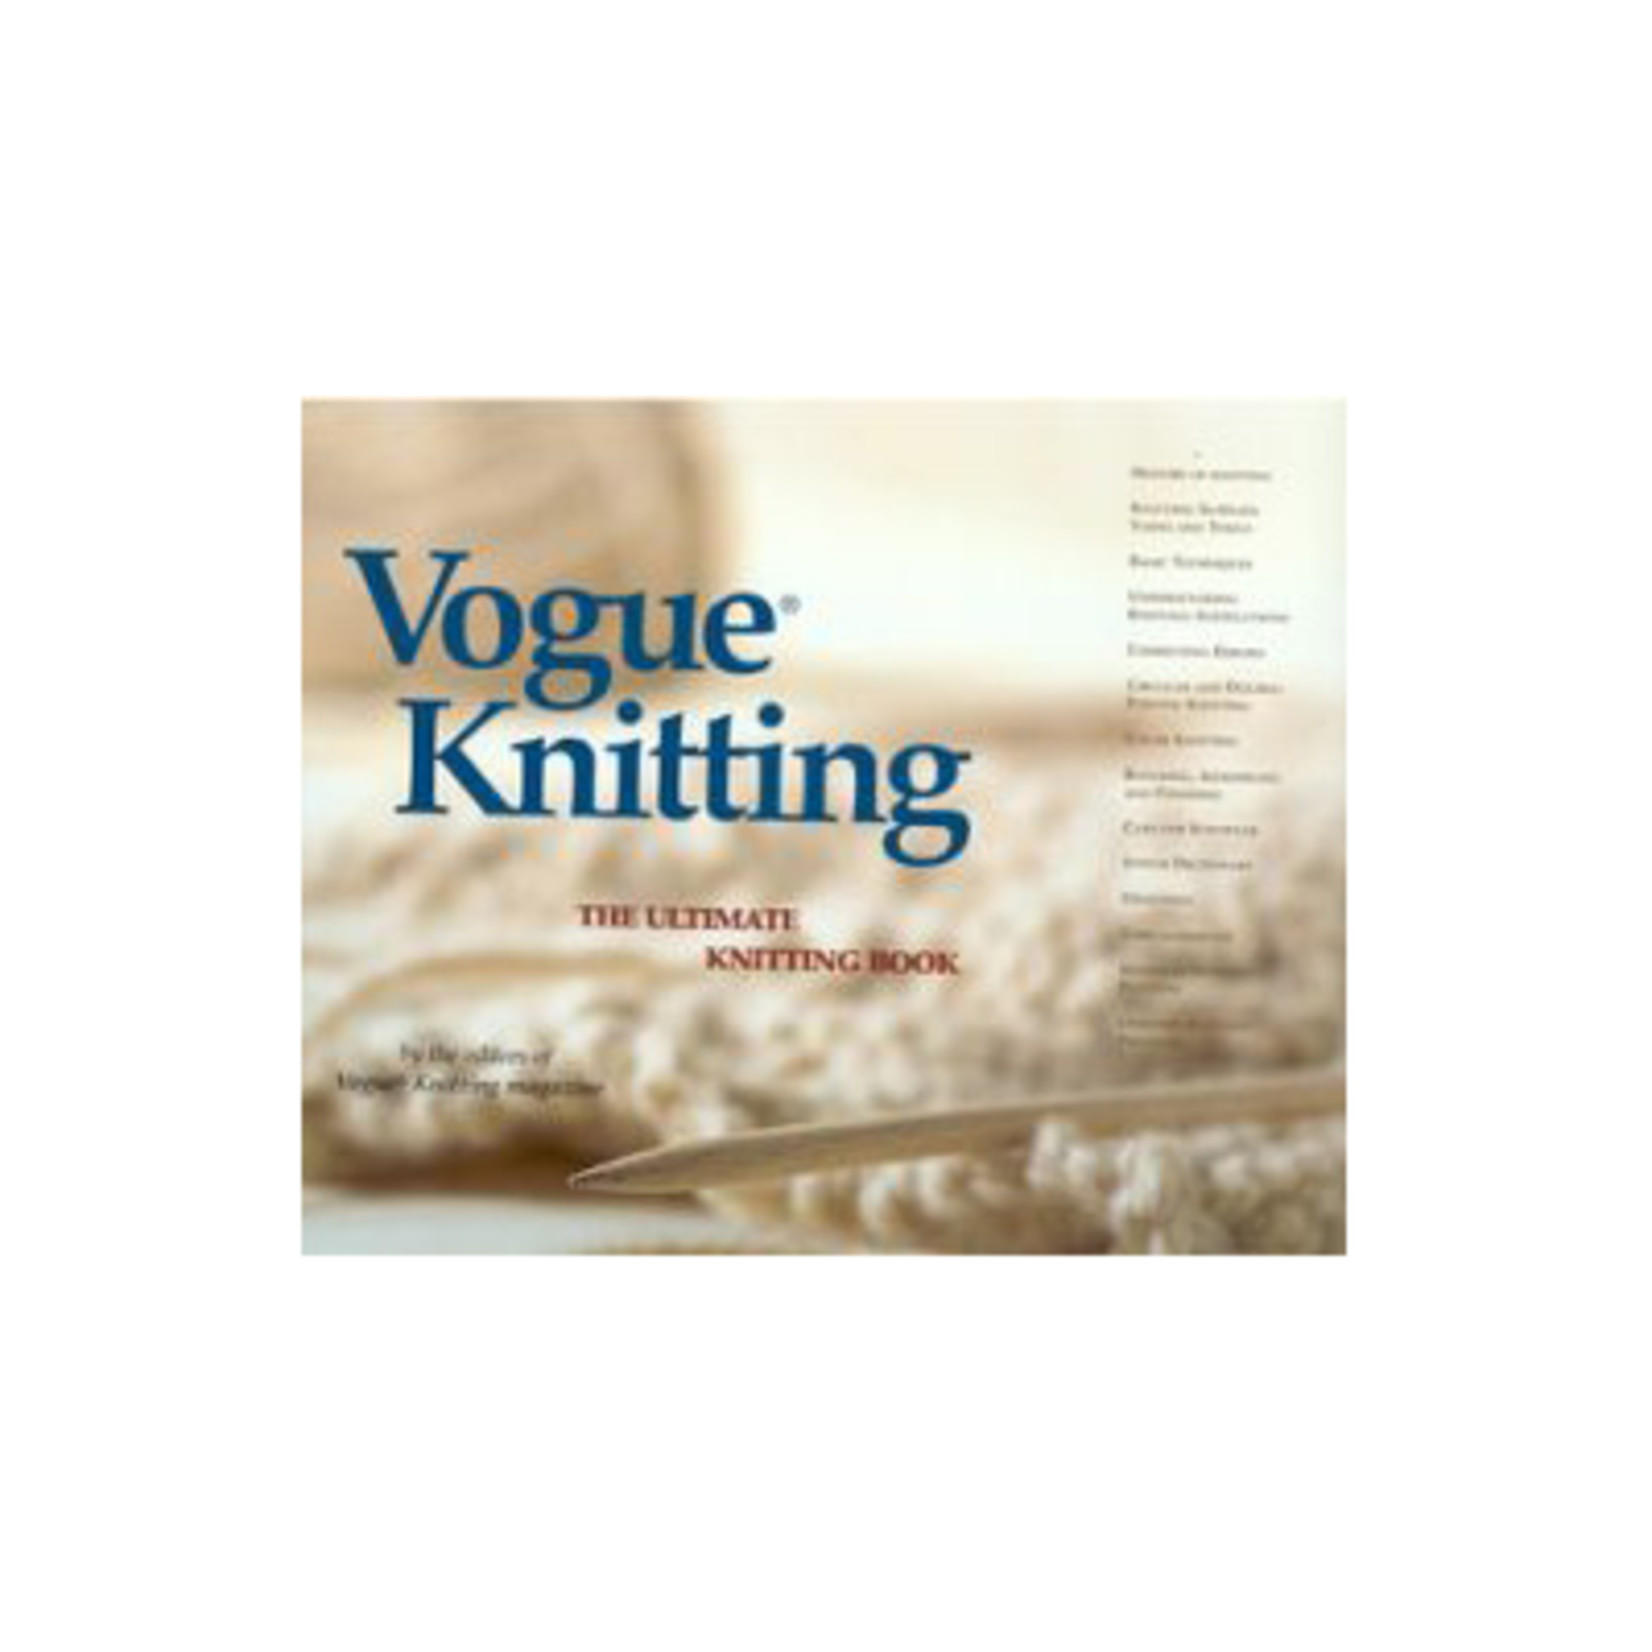 Vogue Knitting Vogue Knitting: The Ultimate Knitting Book  (2015)